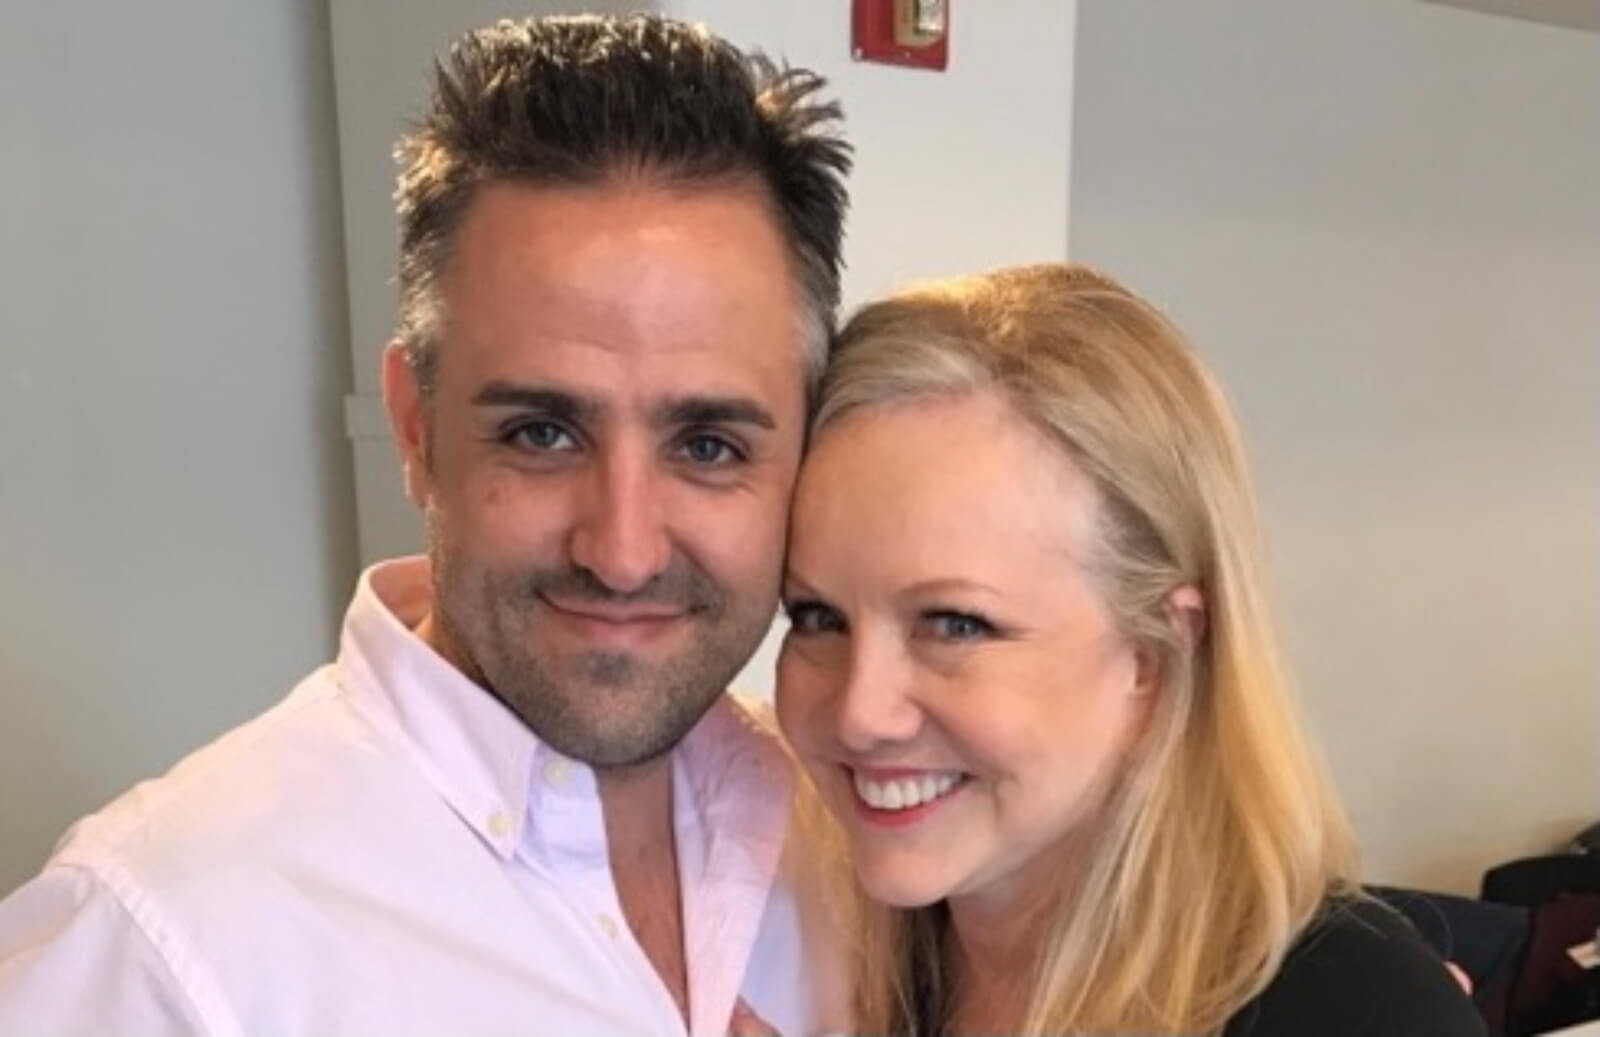 Associate Eric Santagata (dressed in a pink button up shirt) and Director Susan Stroman (dressed in signature blacks)